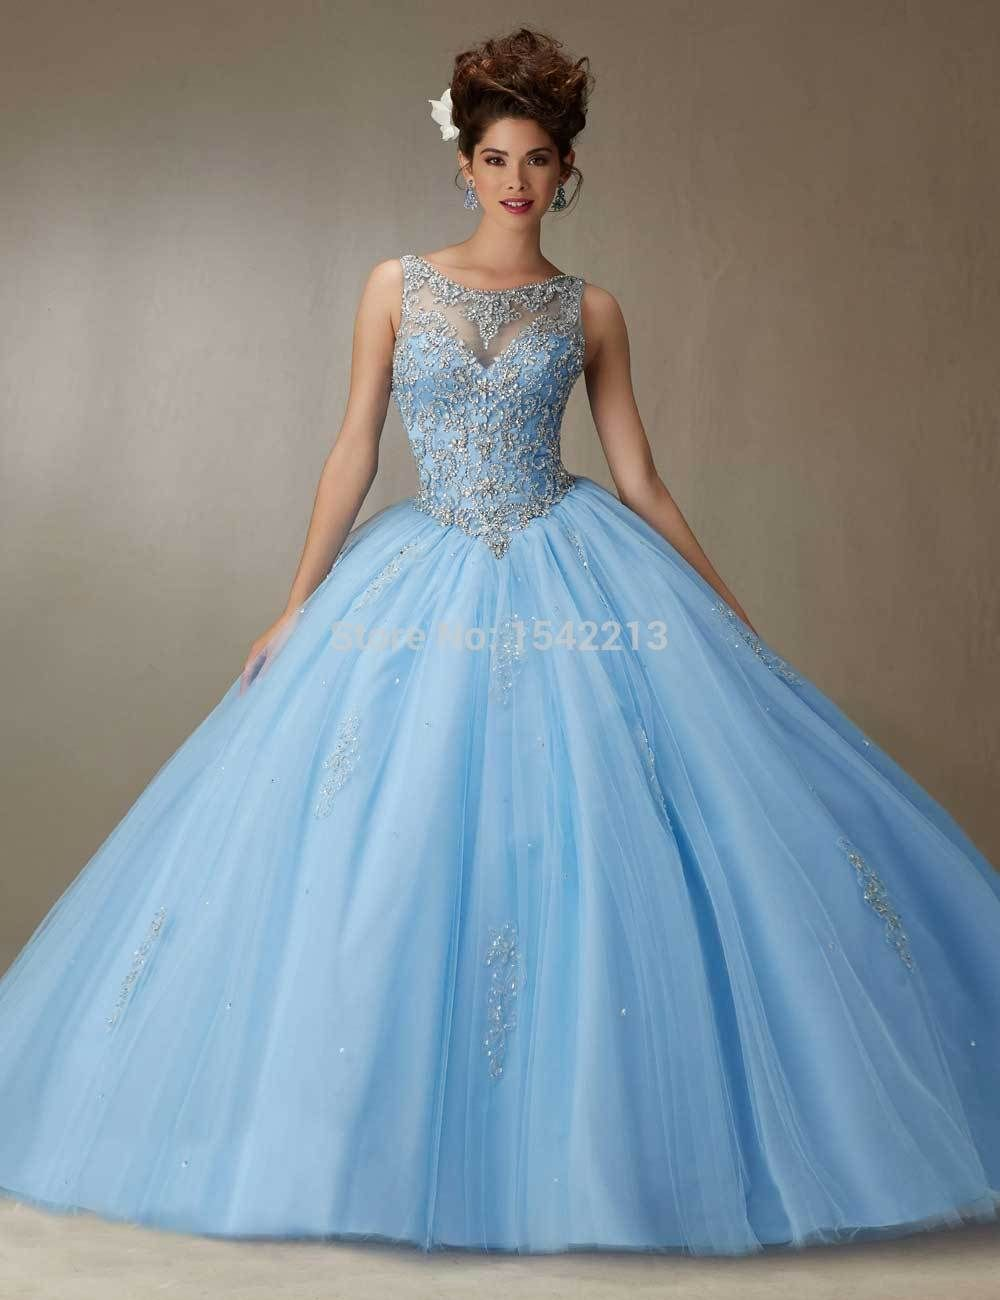 3b4a62412ff Light Sky Blue Pink Ball Gown Quinceanera Dress Heavy Beaded Sexy Backless  Style Girls Sweet 16 Prom Gowns-in Quinceanera Dresses from Weddings    Events on ...